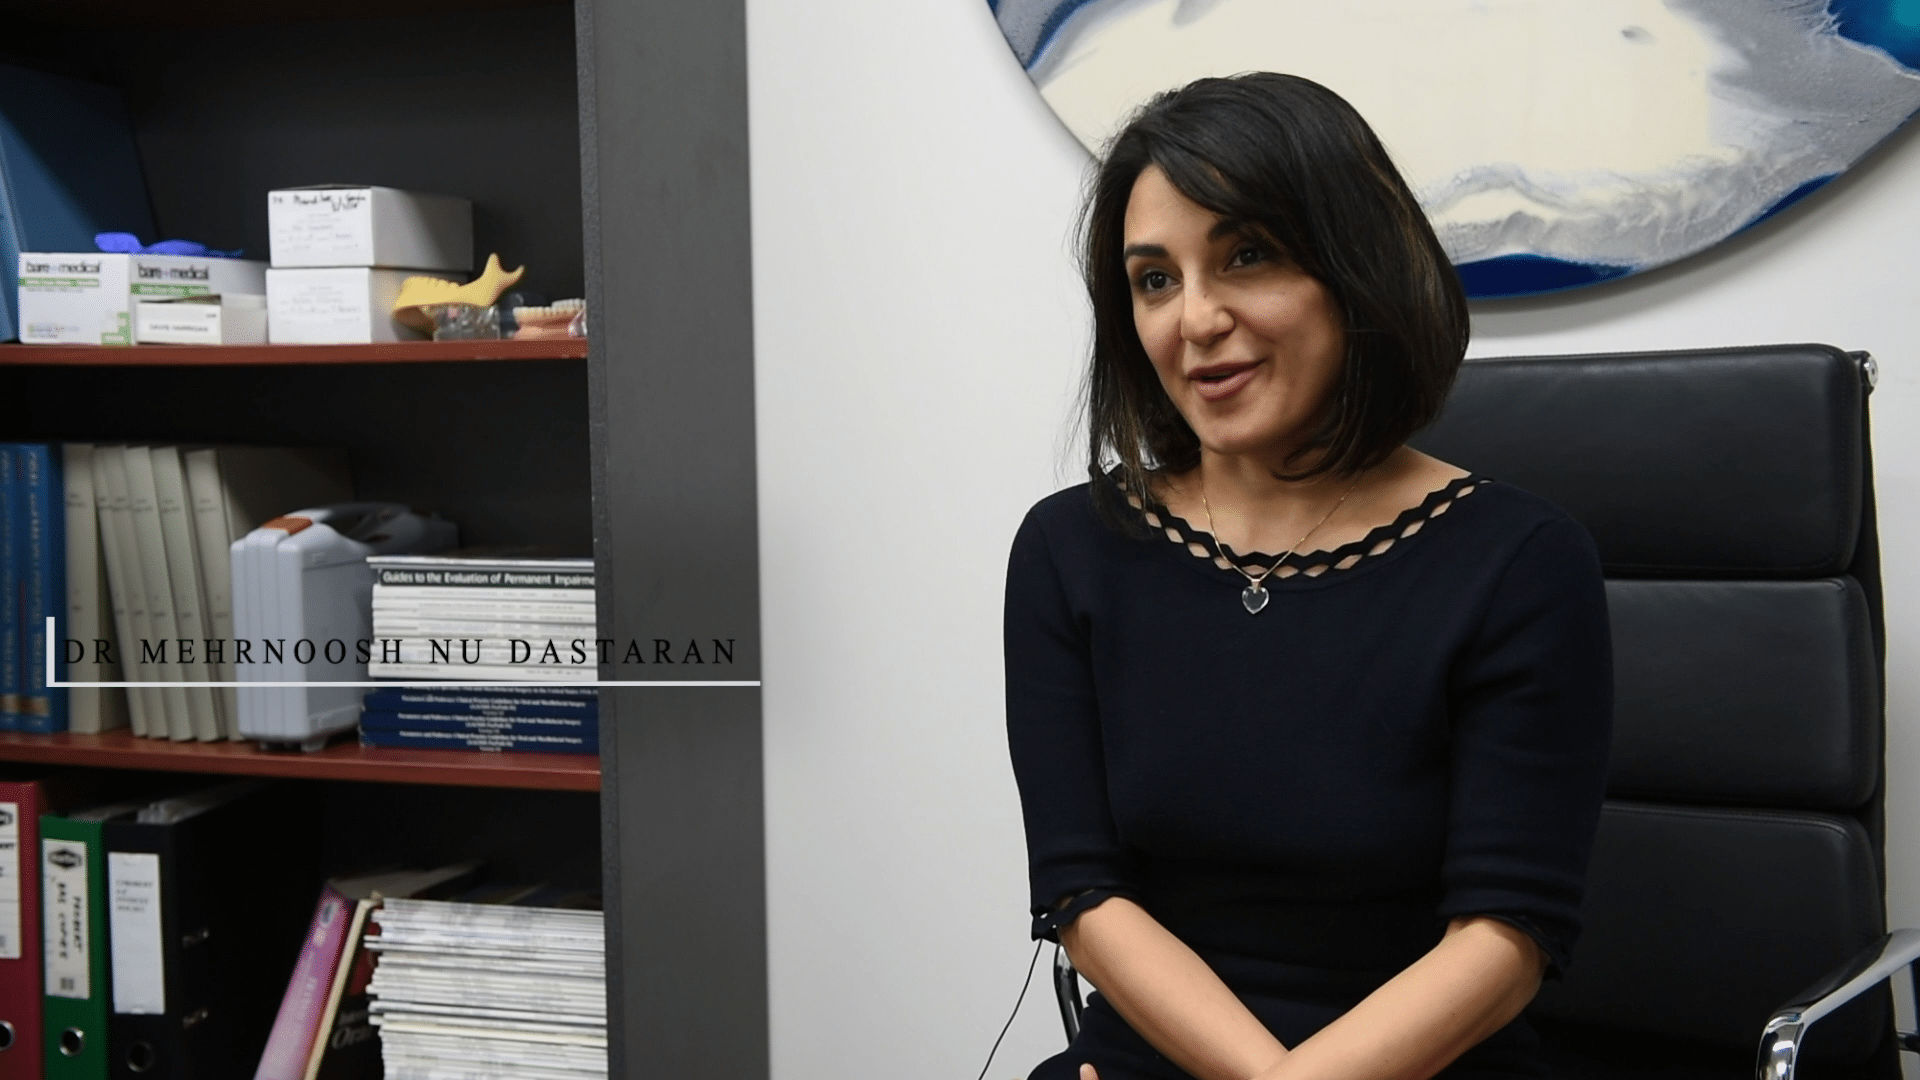 Get to know Dr Mehrnoosh Dastaran